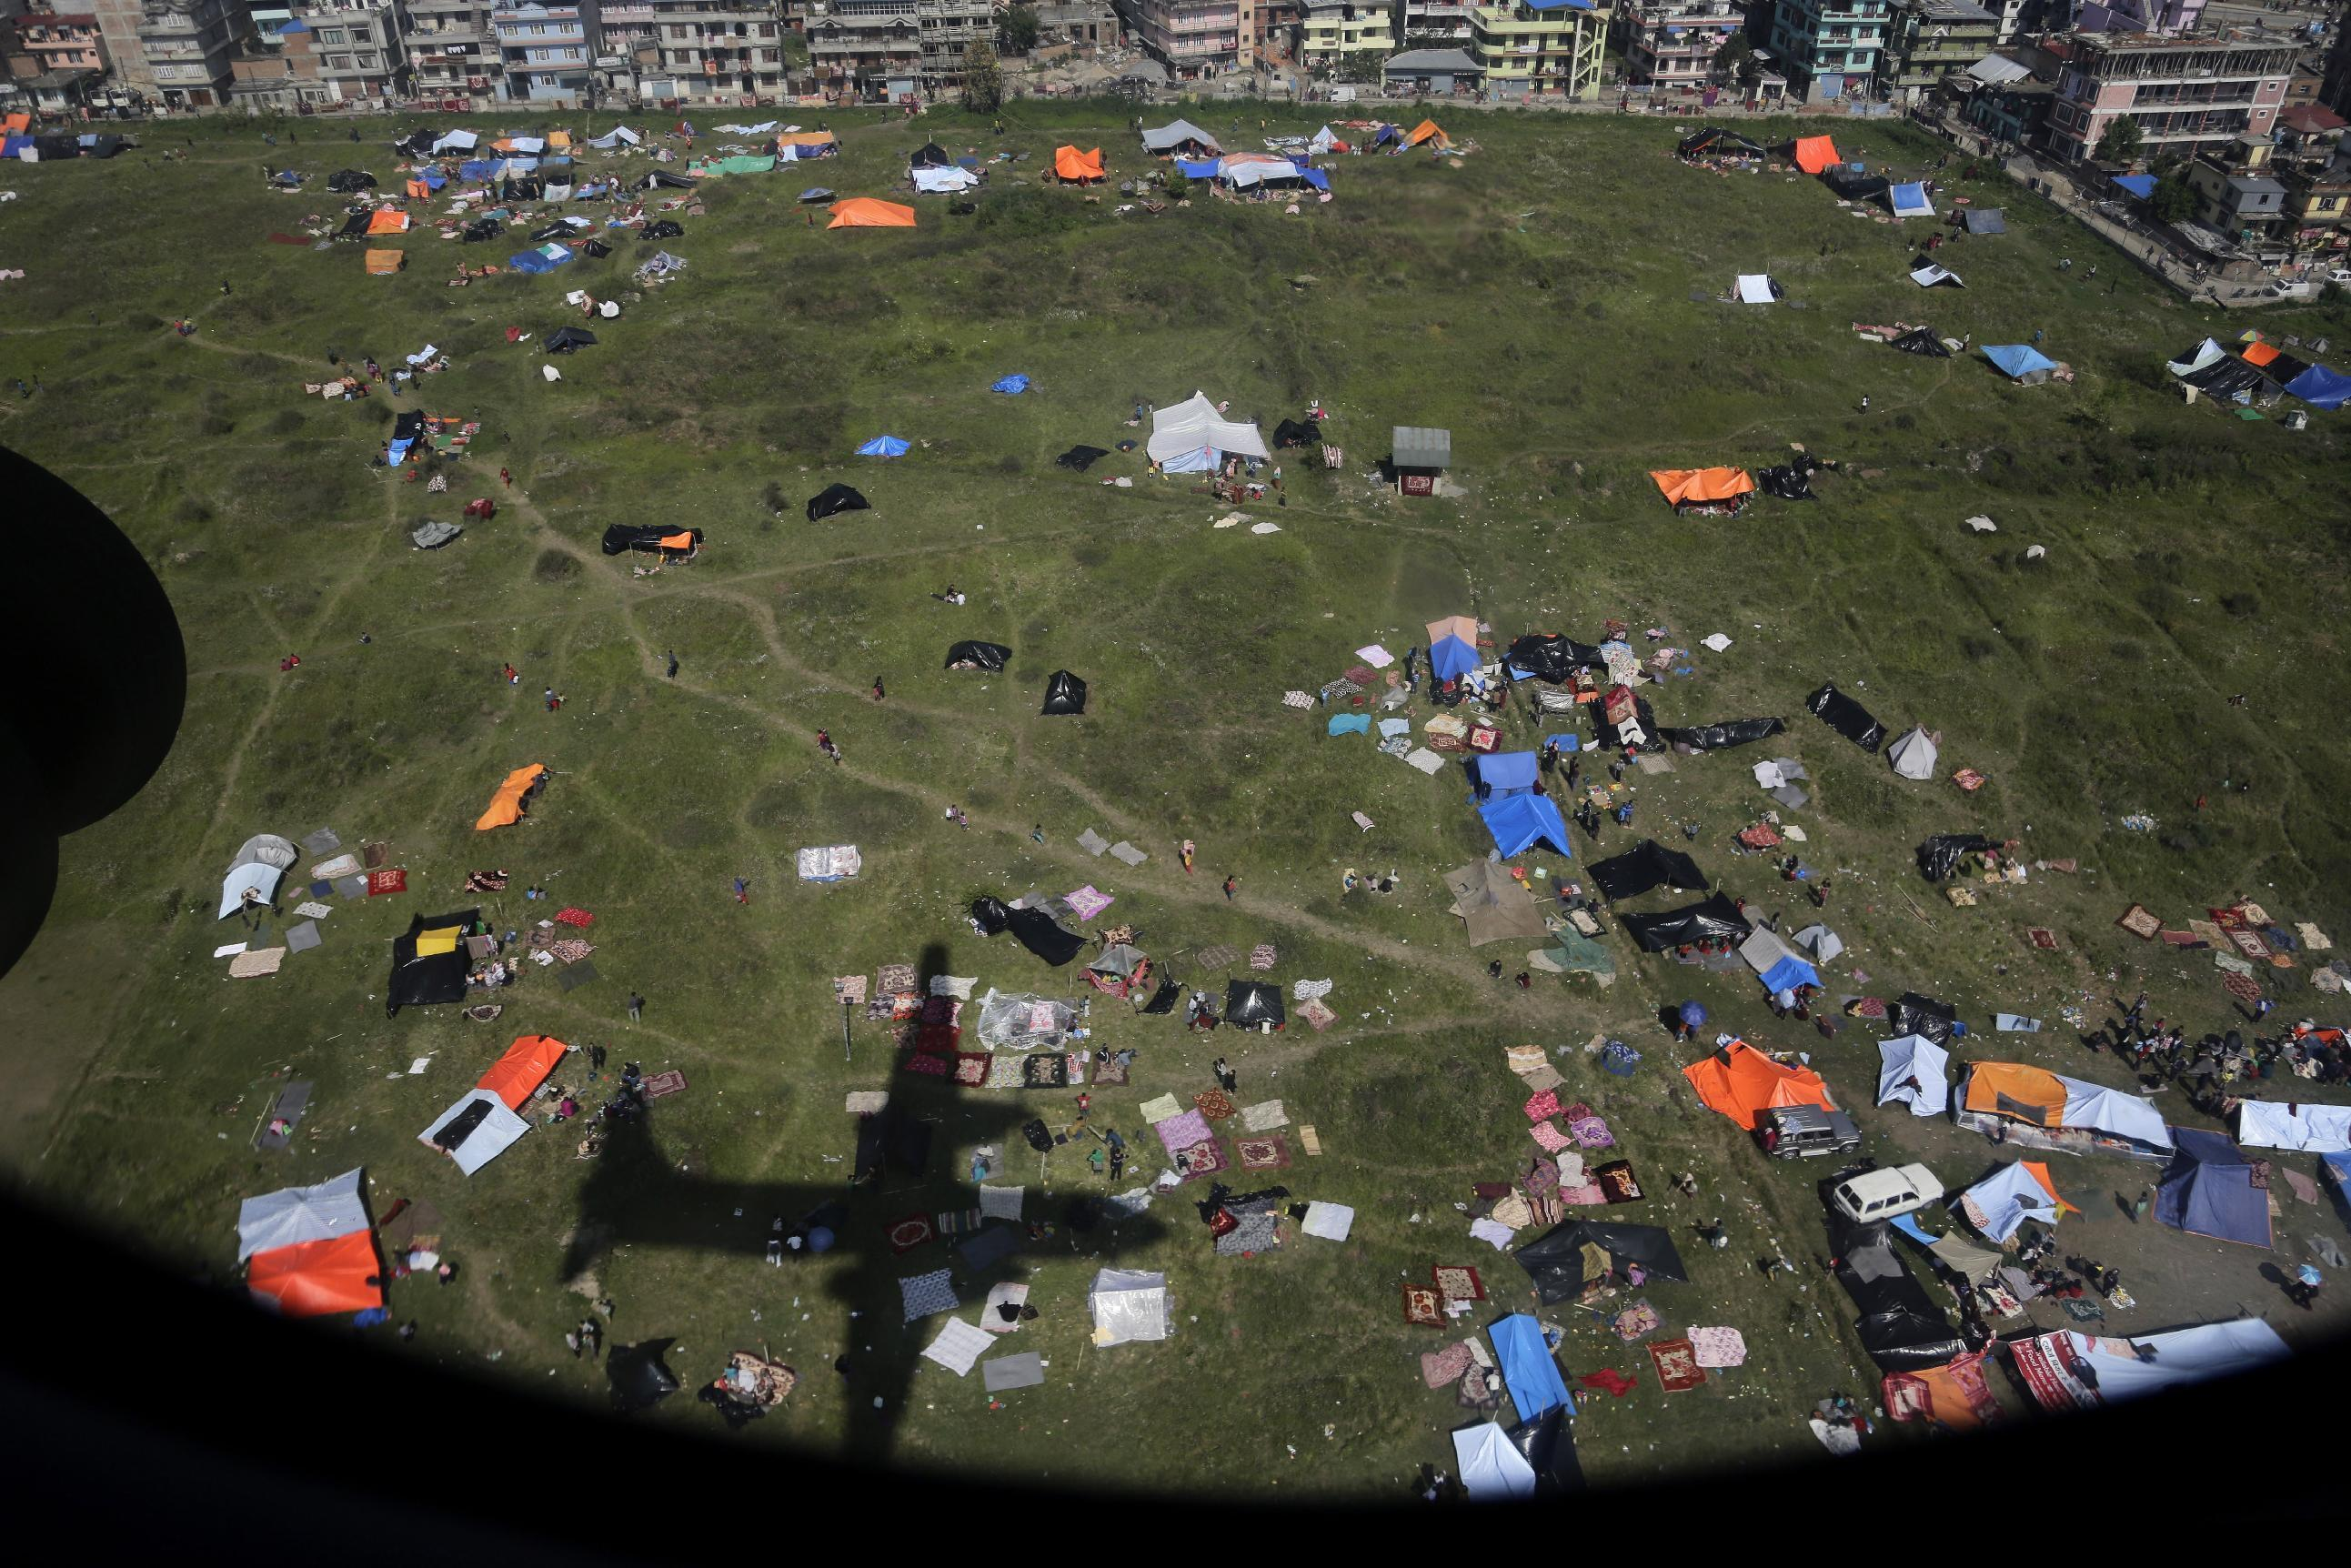 Global effort to help Nepal earthquake victims intensifies